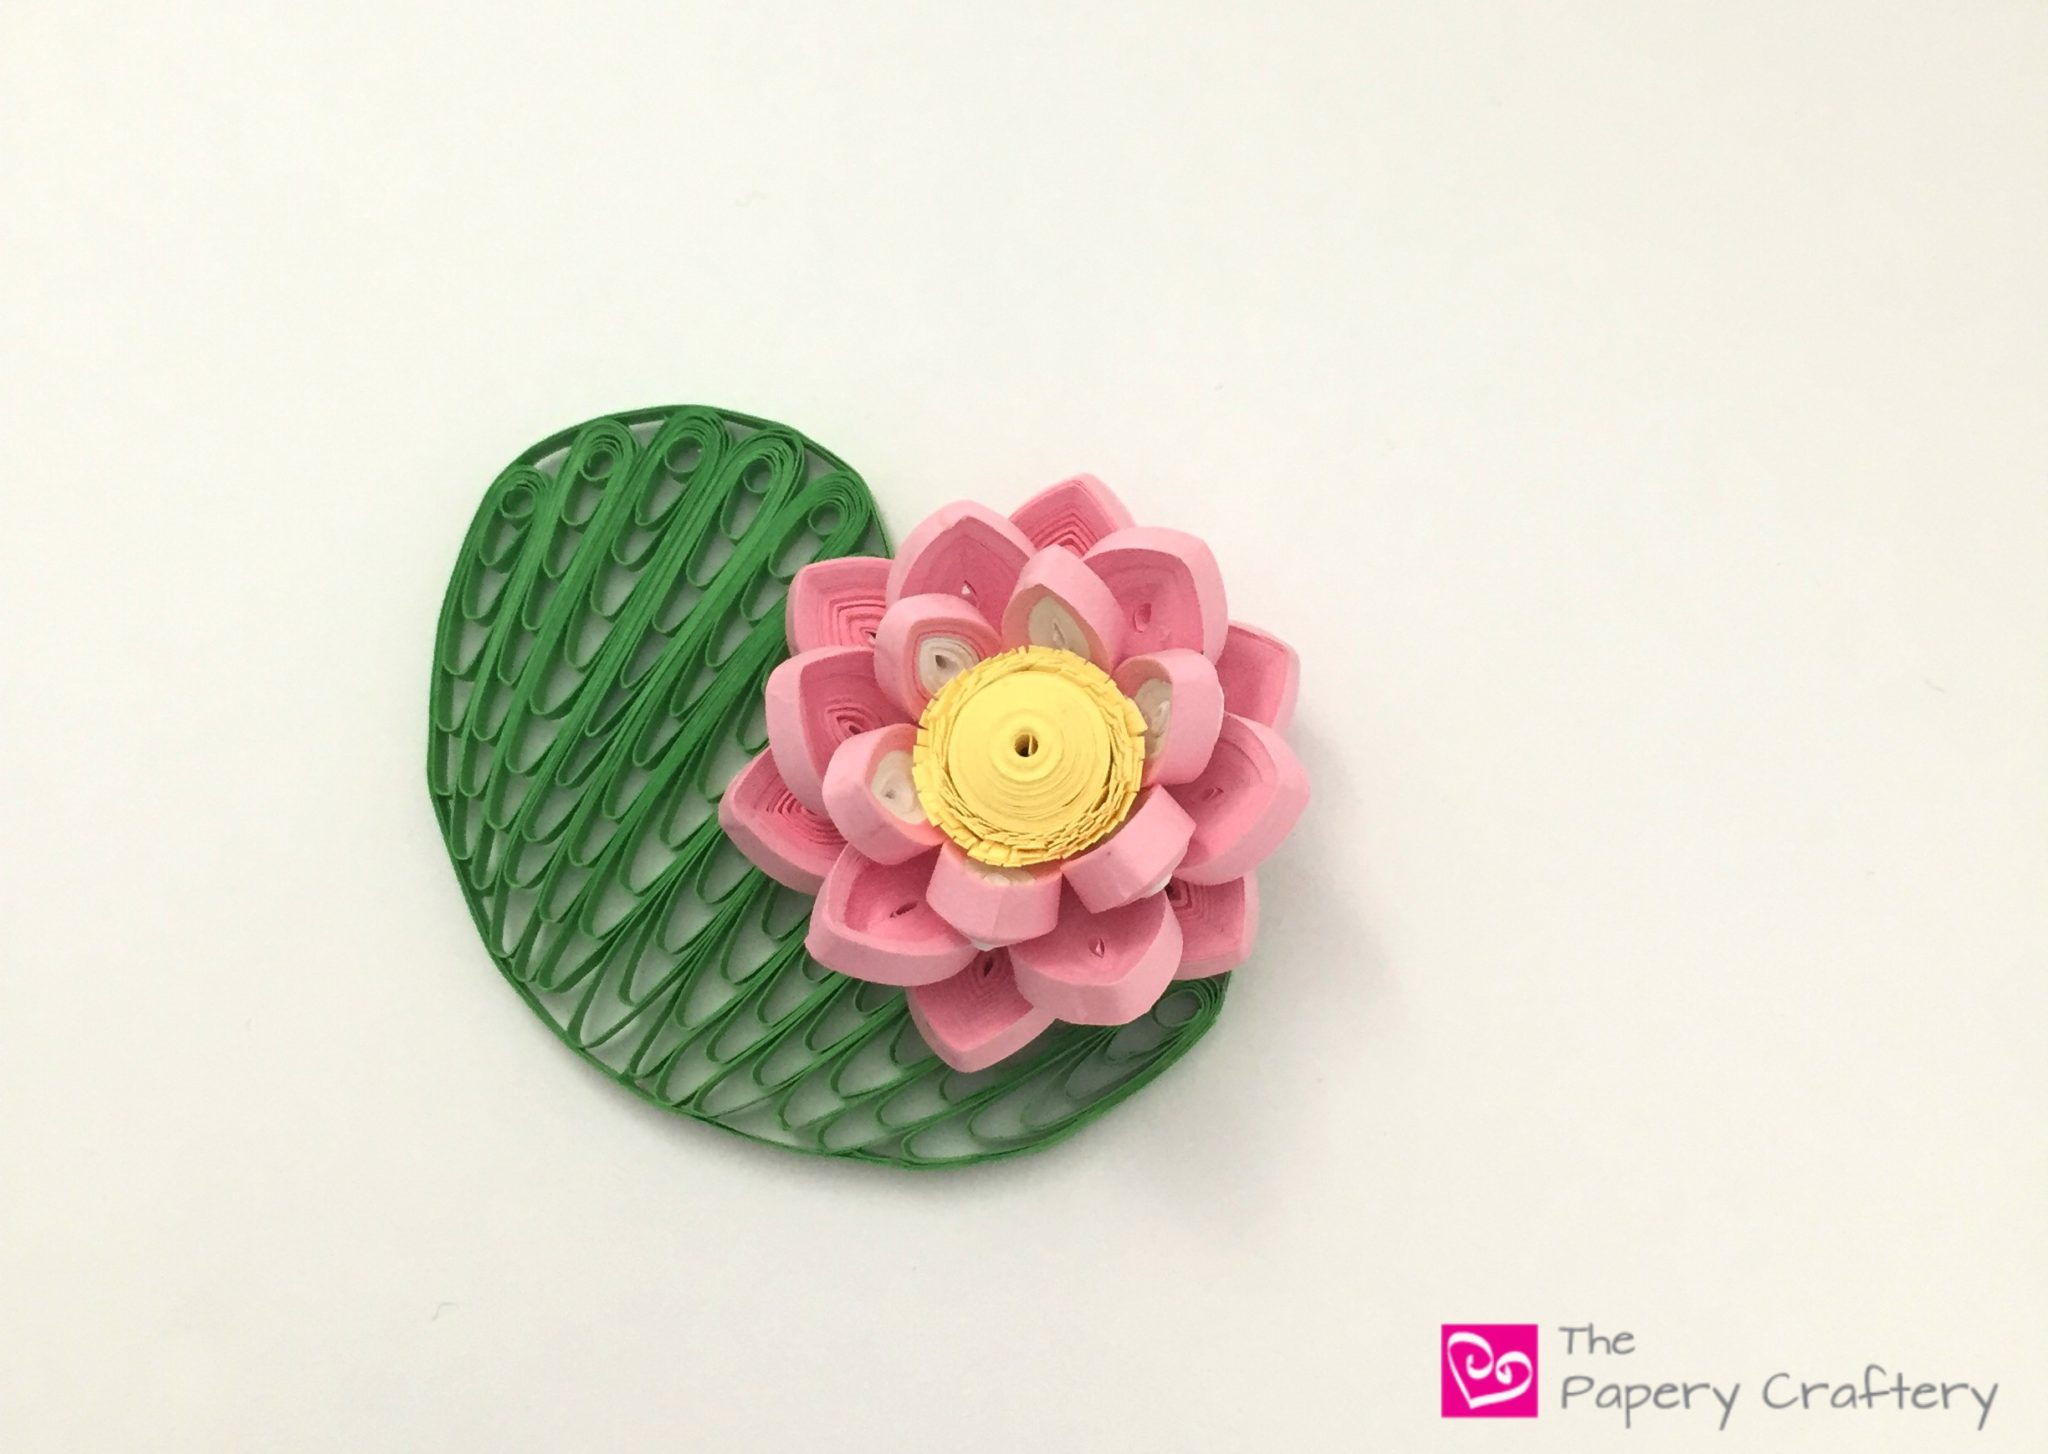 Quilling paper water lilies the papery craftery quilling paper water lilies brush up on your 3d quilling and quilling comb techniques with izmirmasajfo